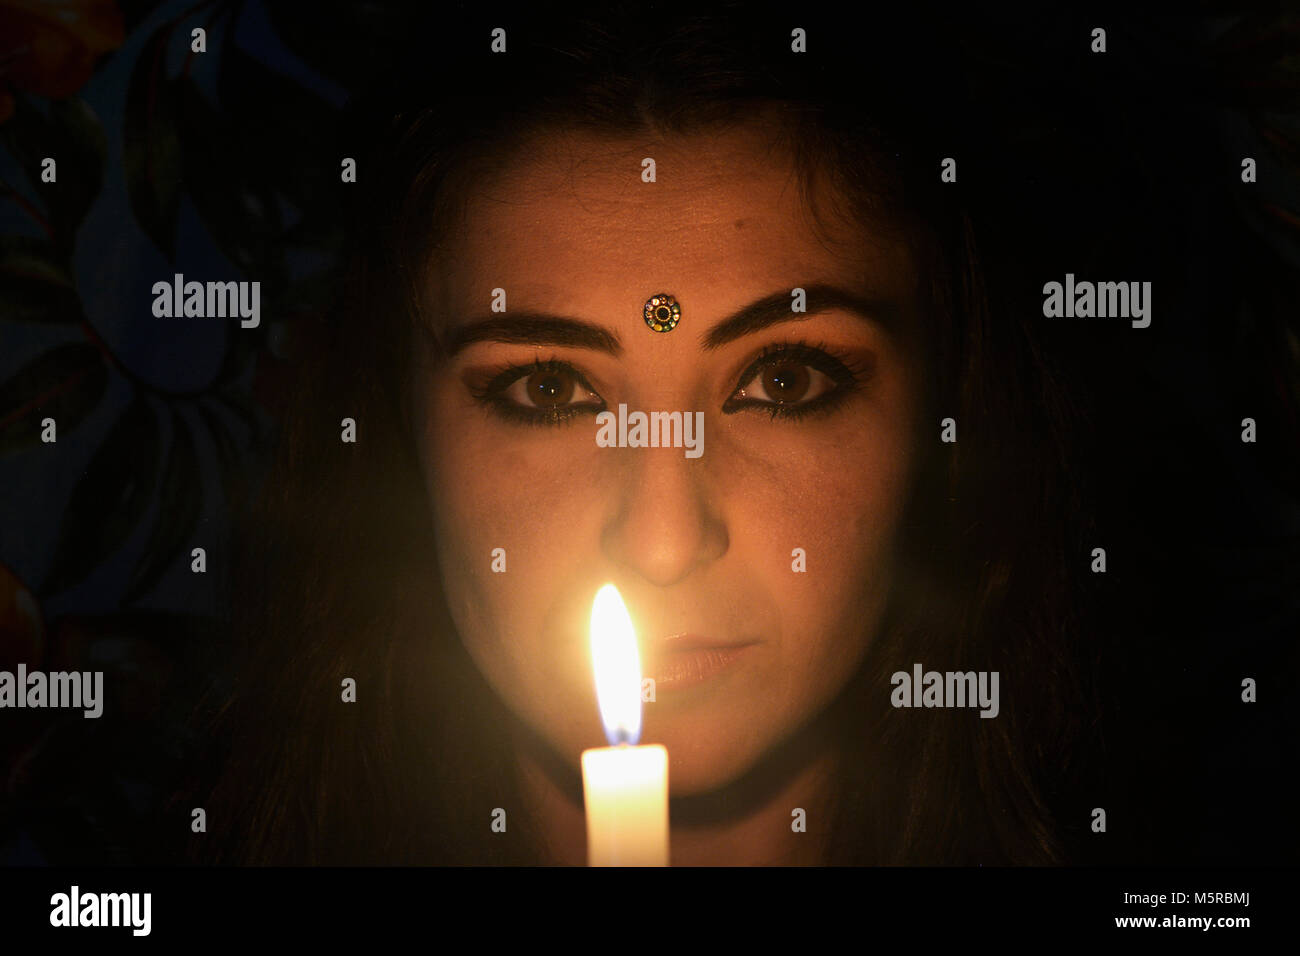 Woman's face with candle in the dark - Stock Image